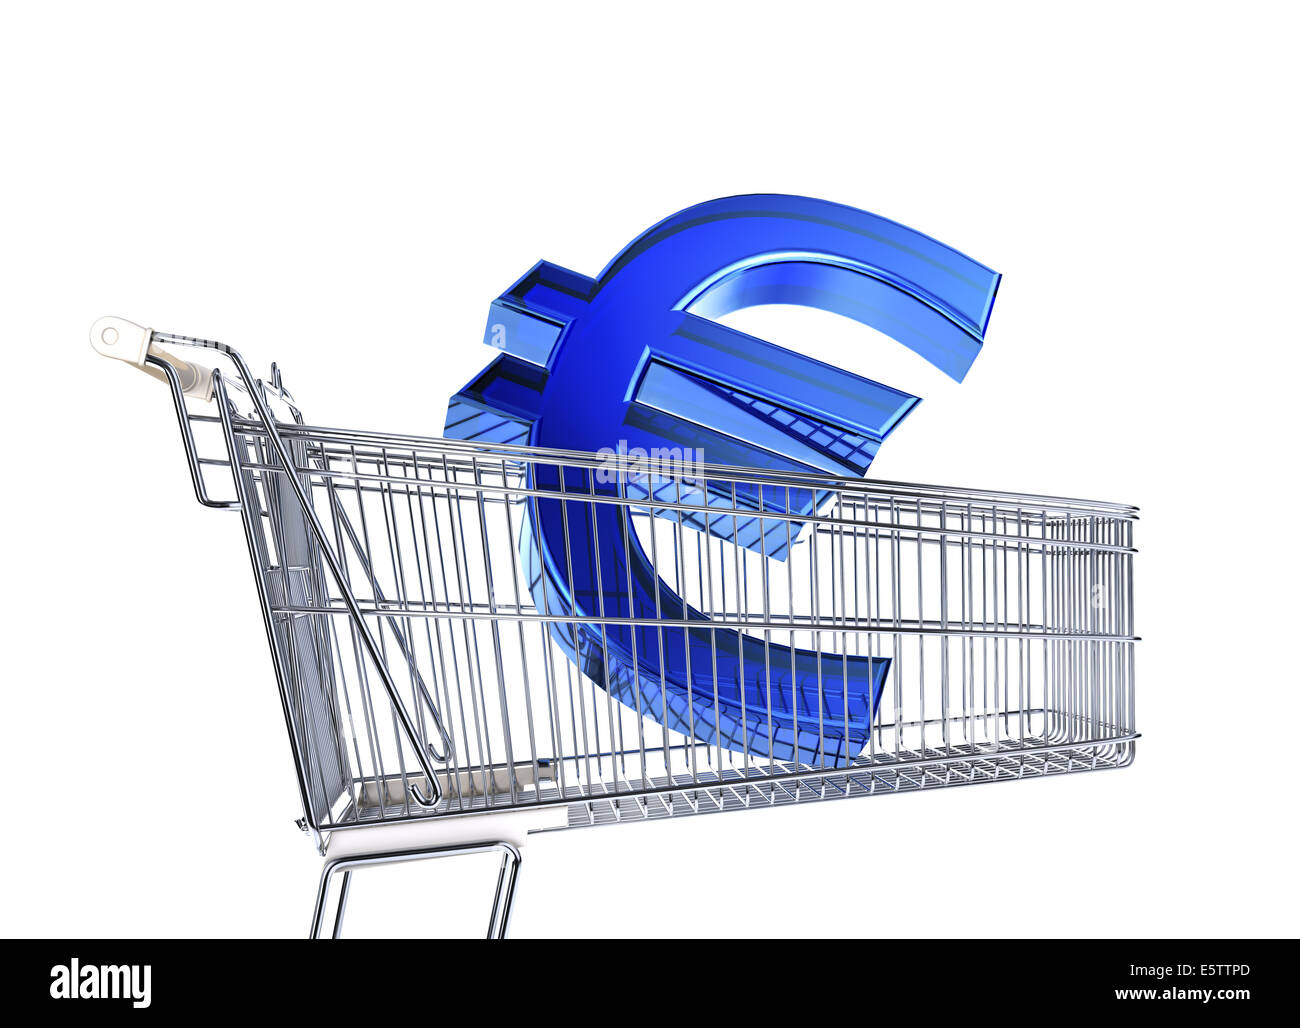 Supermarket trolley with big Euro sign inside it. Side view on white background. - Stock Image